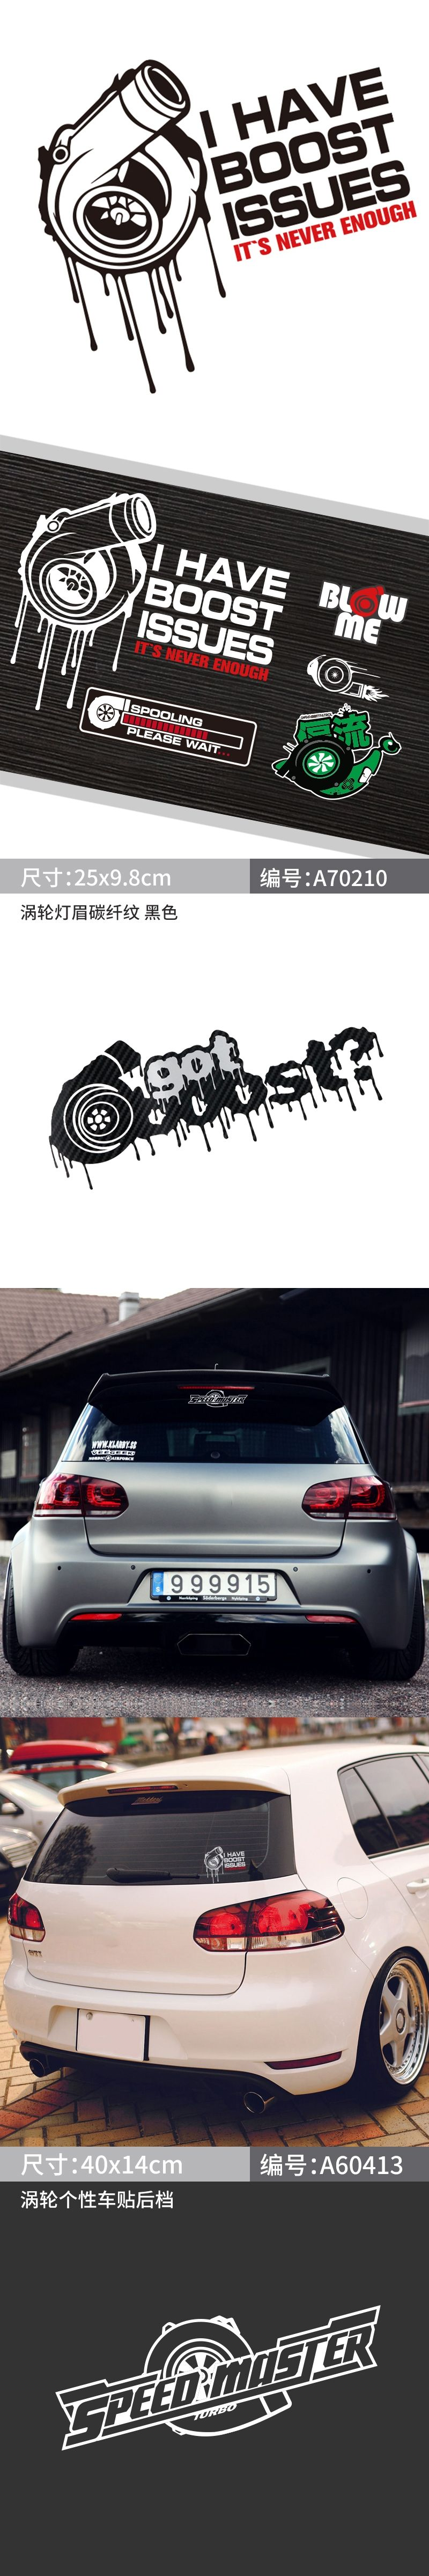 40cm Funny Turbo Drops I Have Boost Issues It S Never Enough Speed Muster Car Styling Reflective Sticker Decal For Audi Benz Bmw Turbo Reflective Benz [ 4800 x 800 Pixel ]